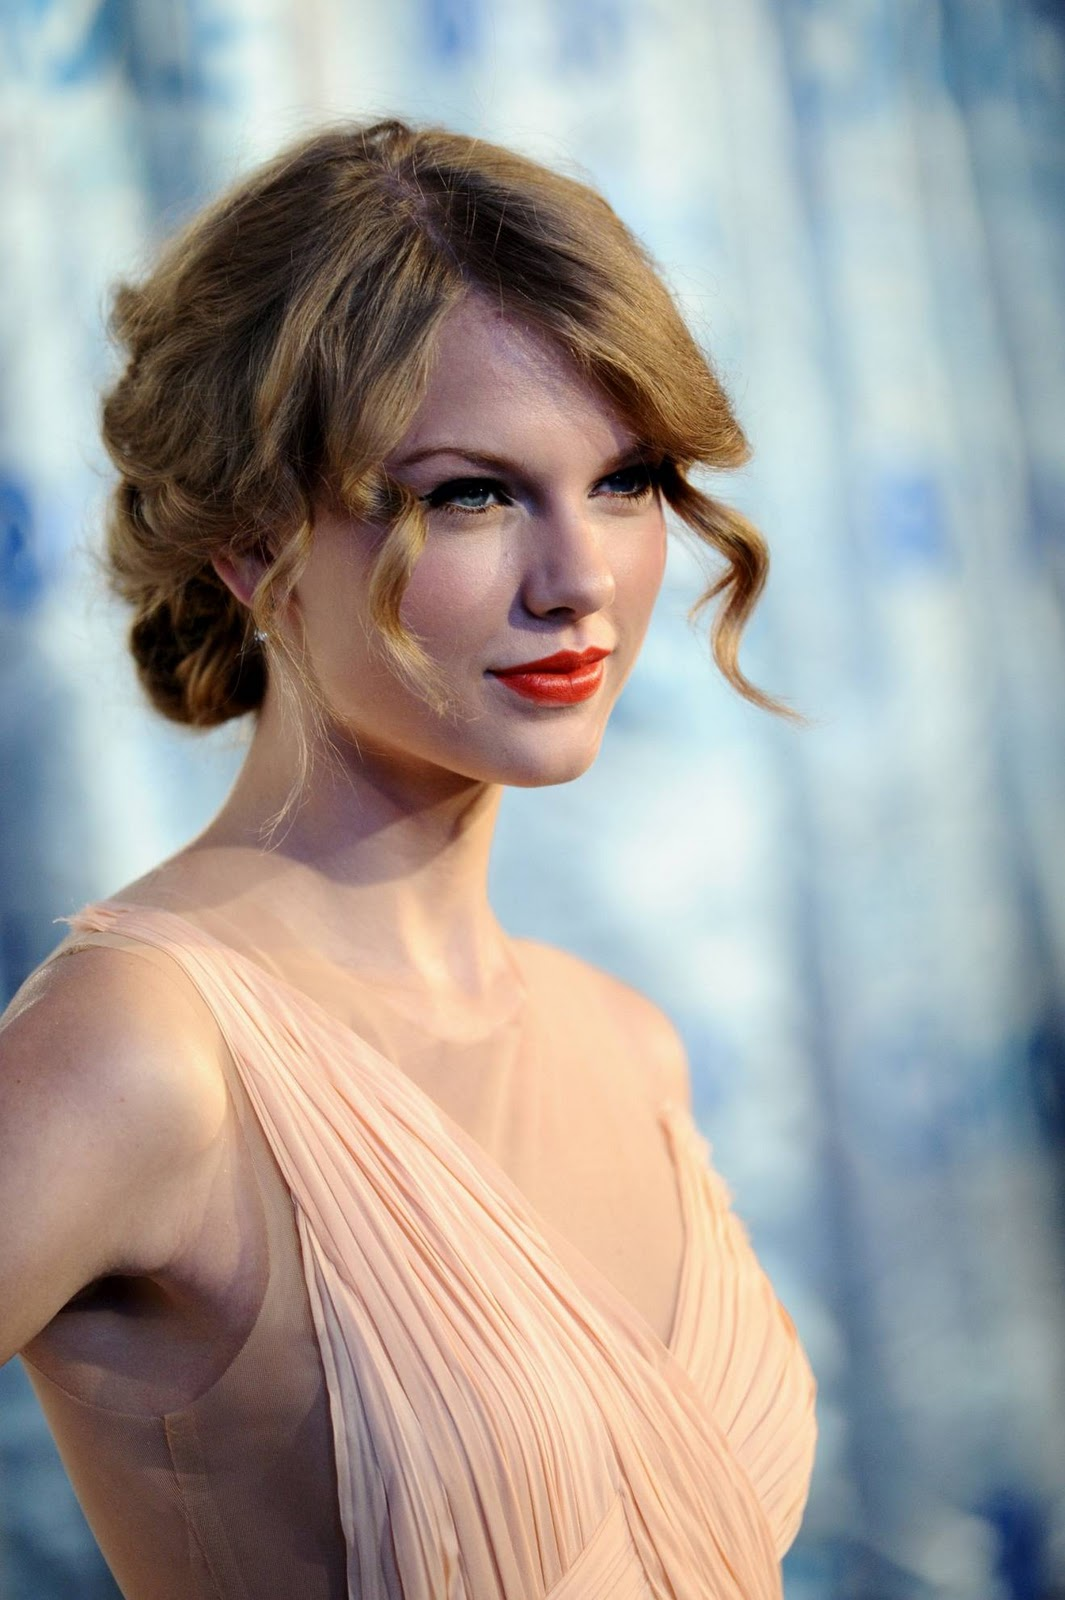 http://2.bp.blogspot.com/_DiHELN0b_Sg/TSnYjBg44II/AAAAAAAAAno/jeTAiMRSJgk/s1600/taylor-swift-in-2011-peoples-choice-awards-71.jpg